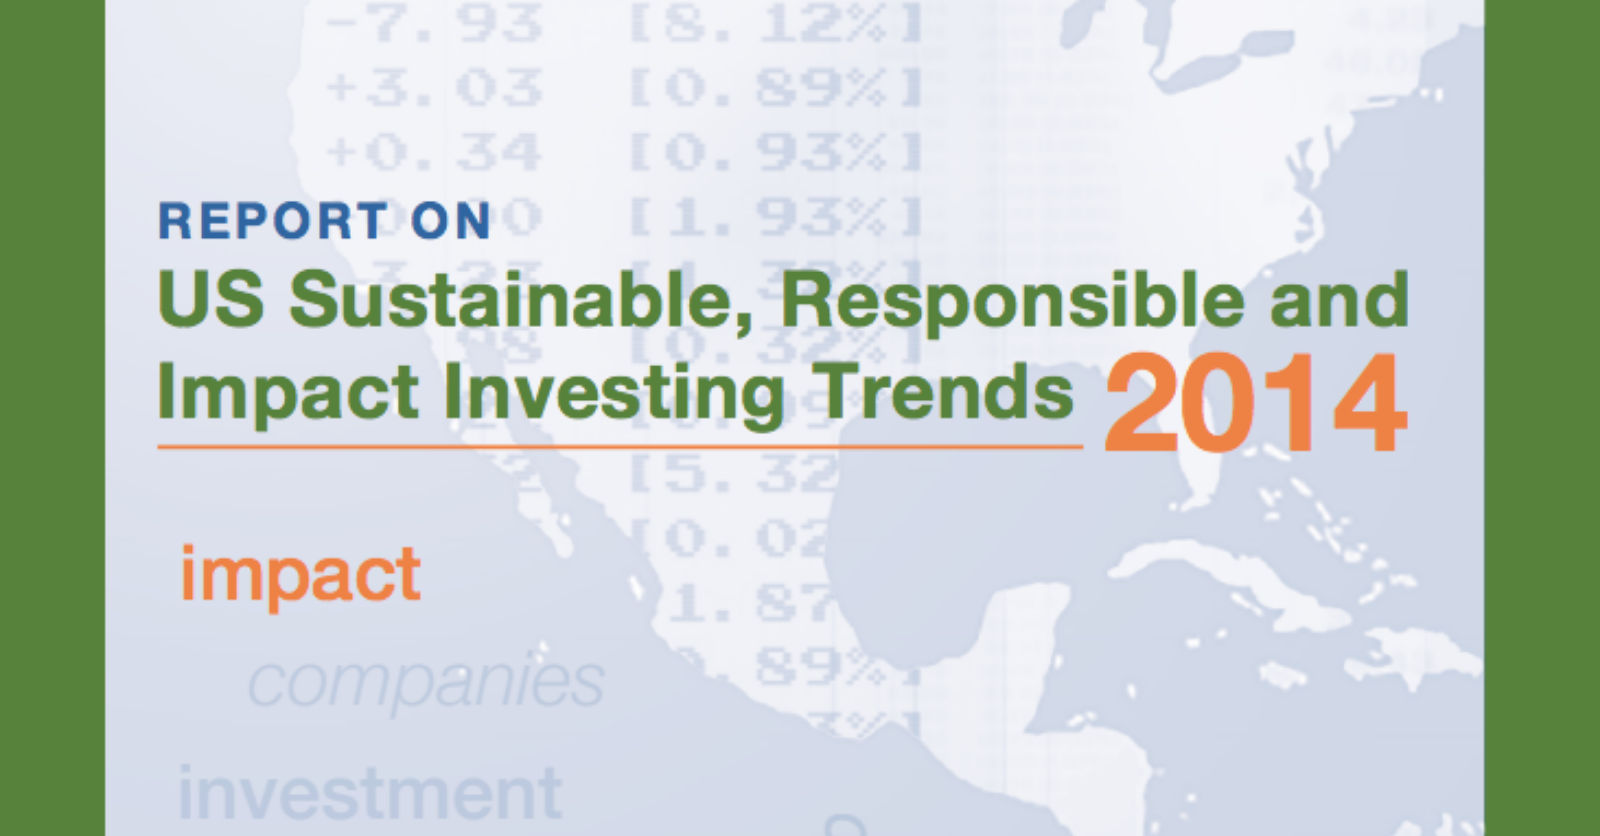 Report on US Sustainable, Responsible, and Impact Investing Trends 2014